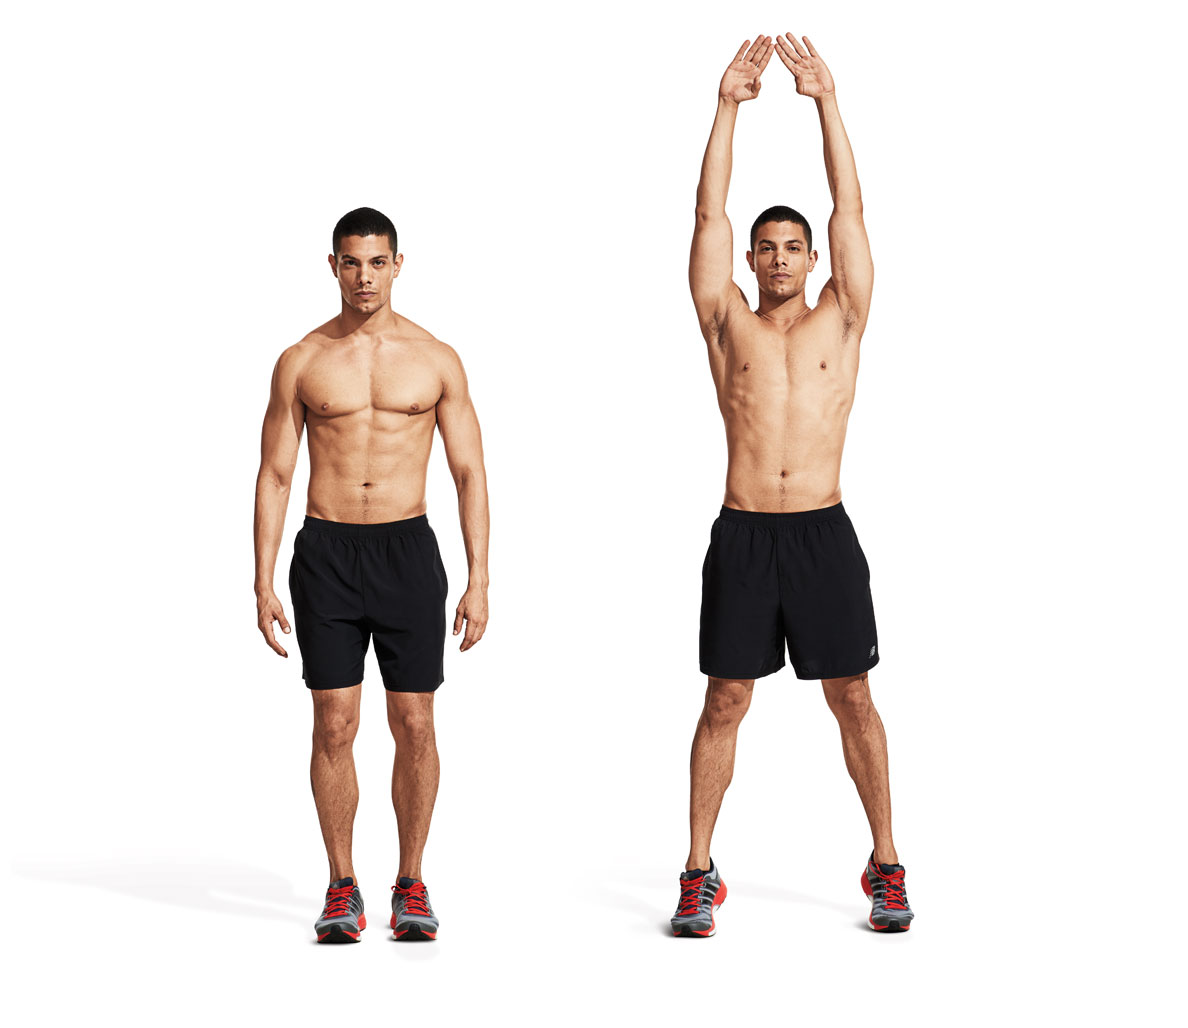 10 Workouts That Burn Calories Faster Than Traditional Cardio